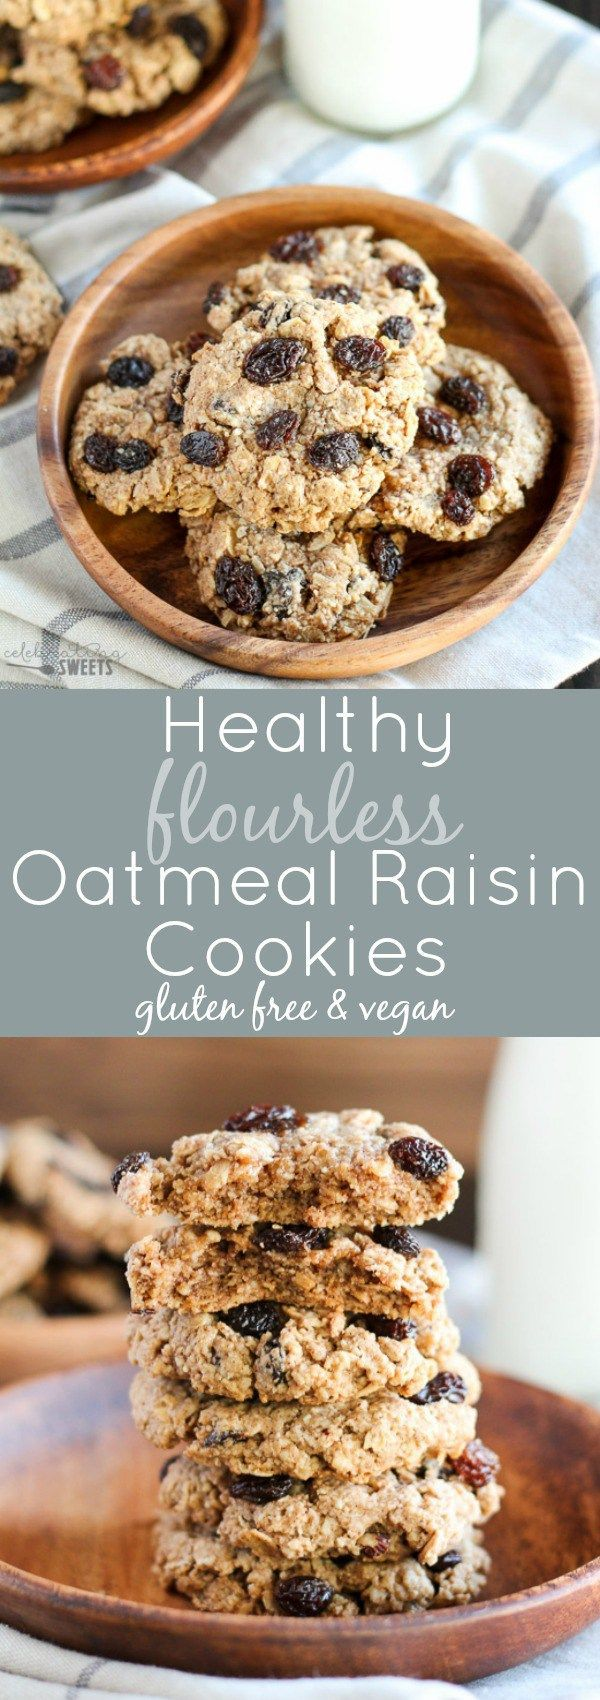 Healthy Flourless Oatmeal Raisin Cookies- Chewy cookies made with oats, almond flour, almond butter, maple syrup and coconut oil. Gluten free and vegan.